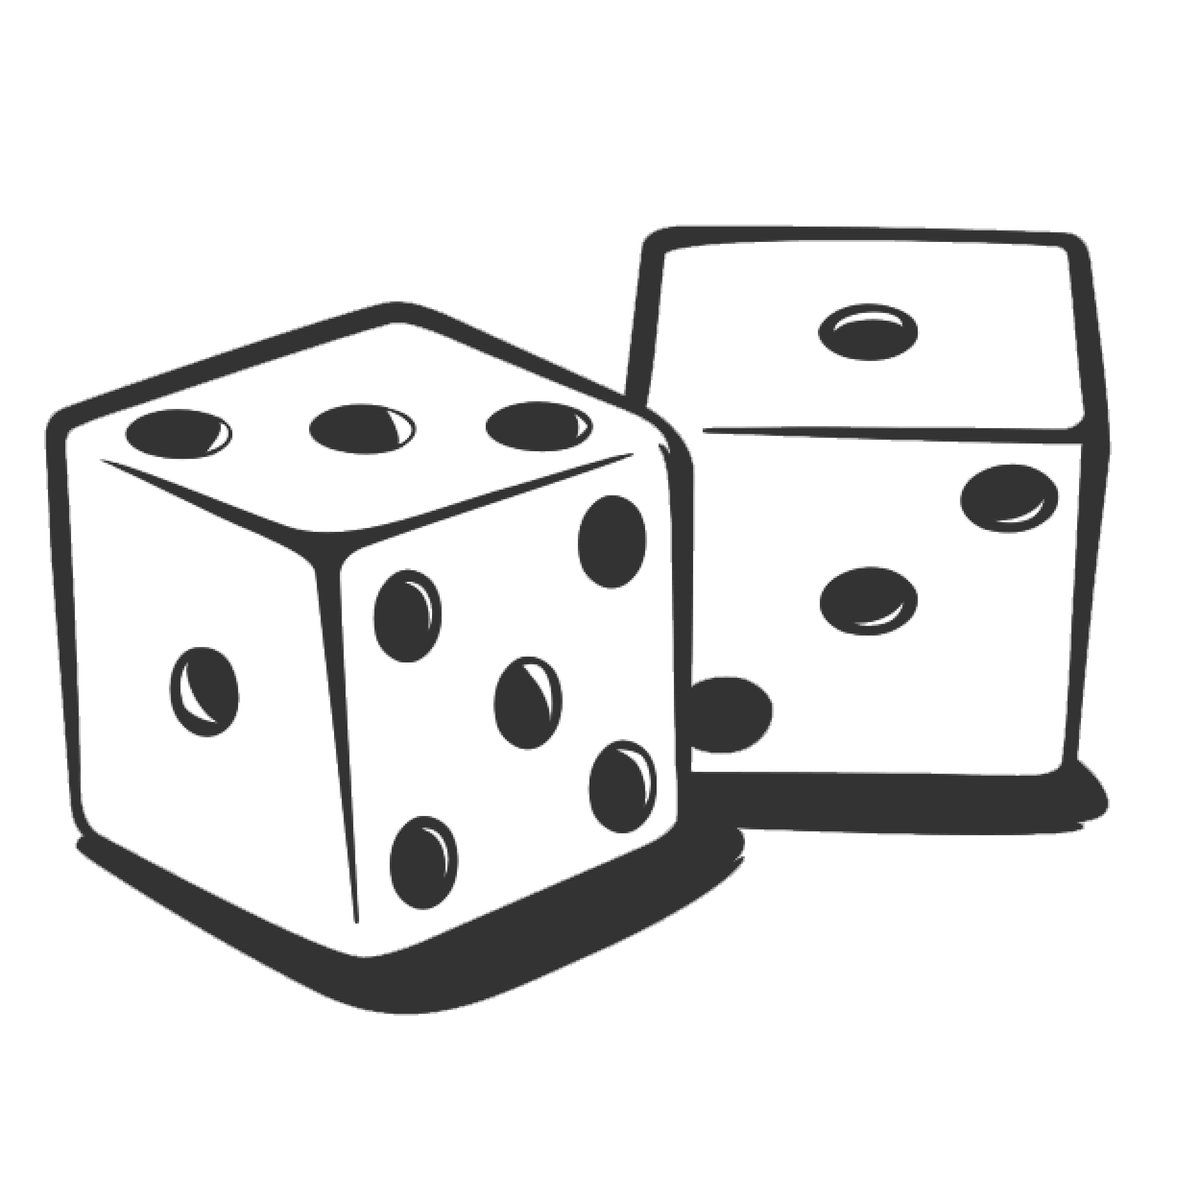 Gaming clipart roll.